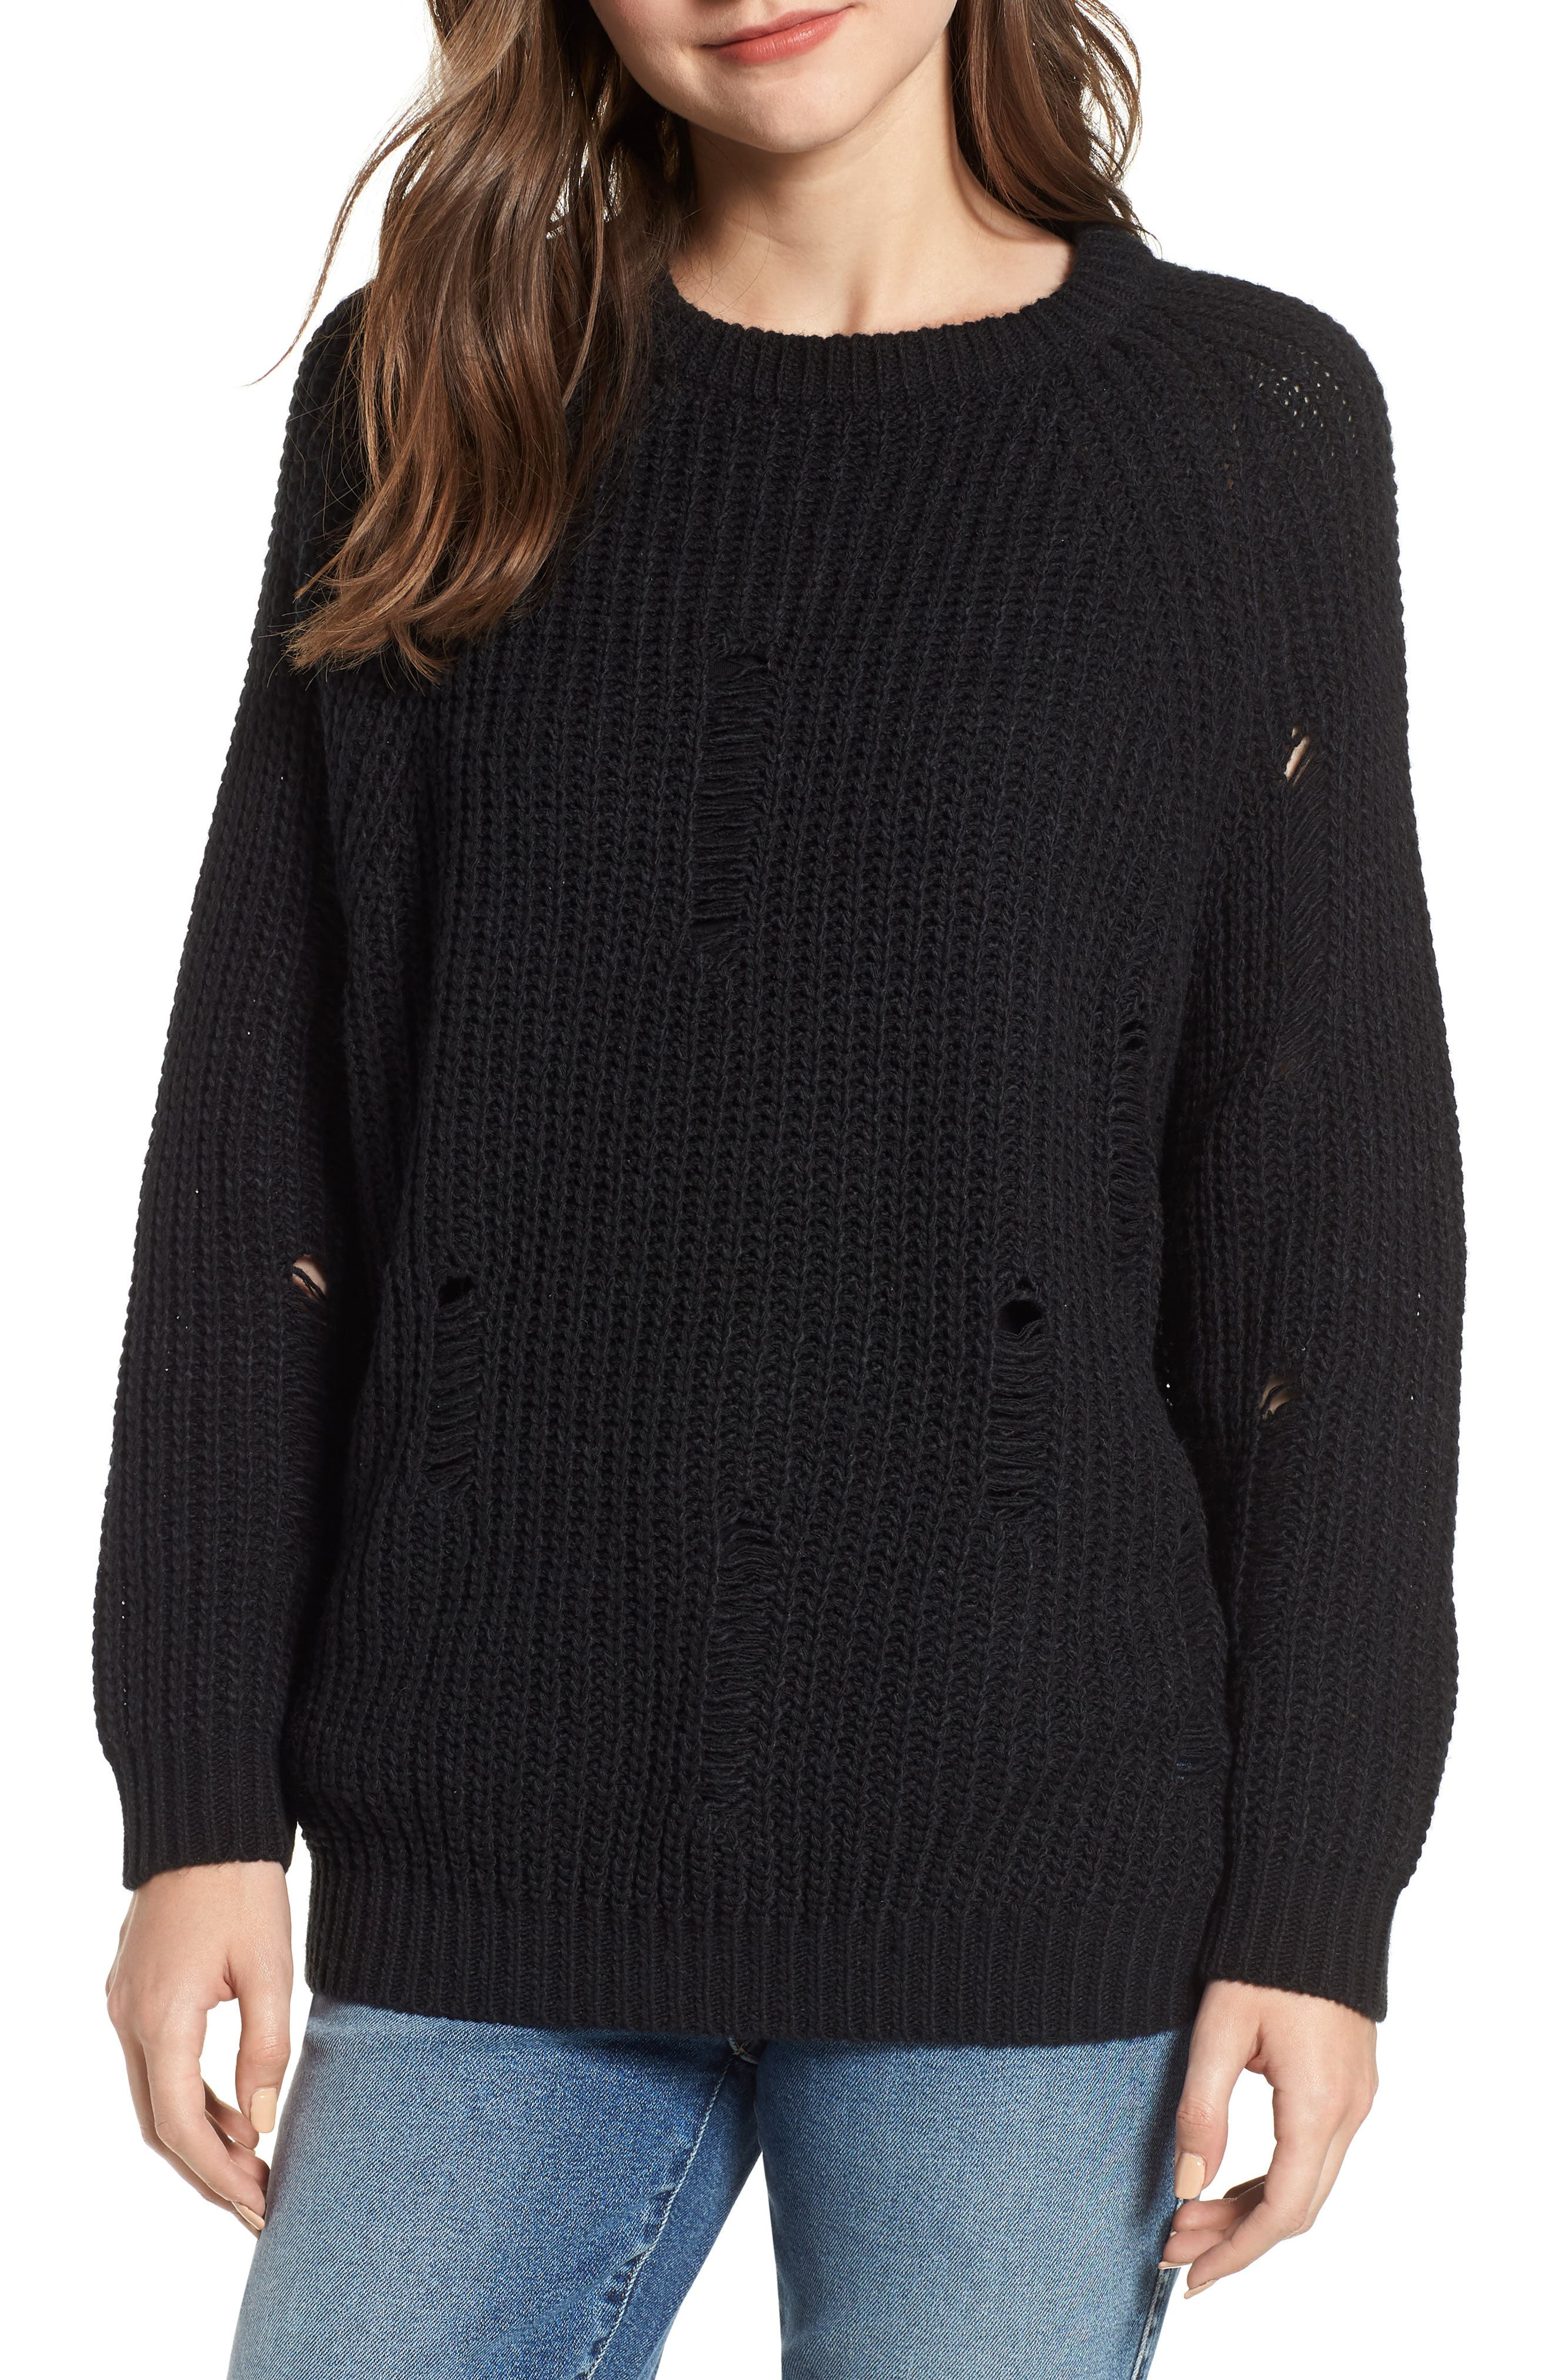 Bishop + Young Simone Distressed Shaker Sweater,                         Main,                         color, BLACK